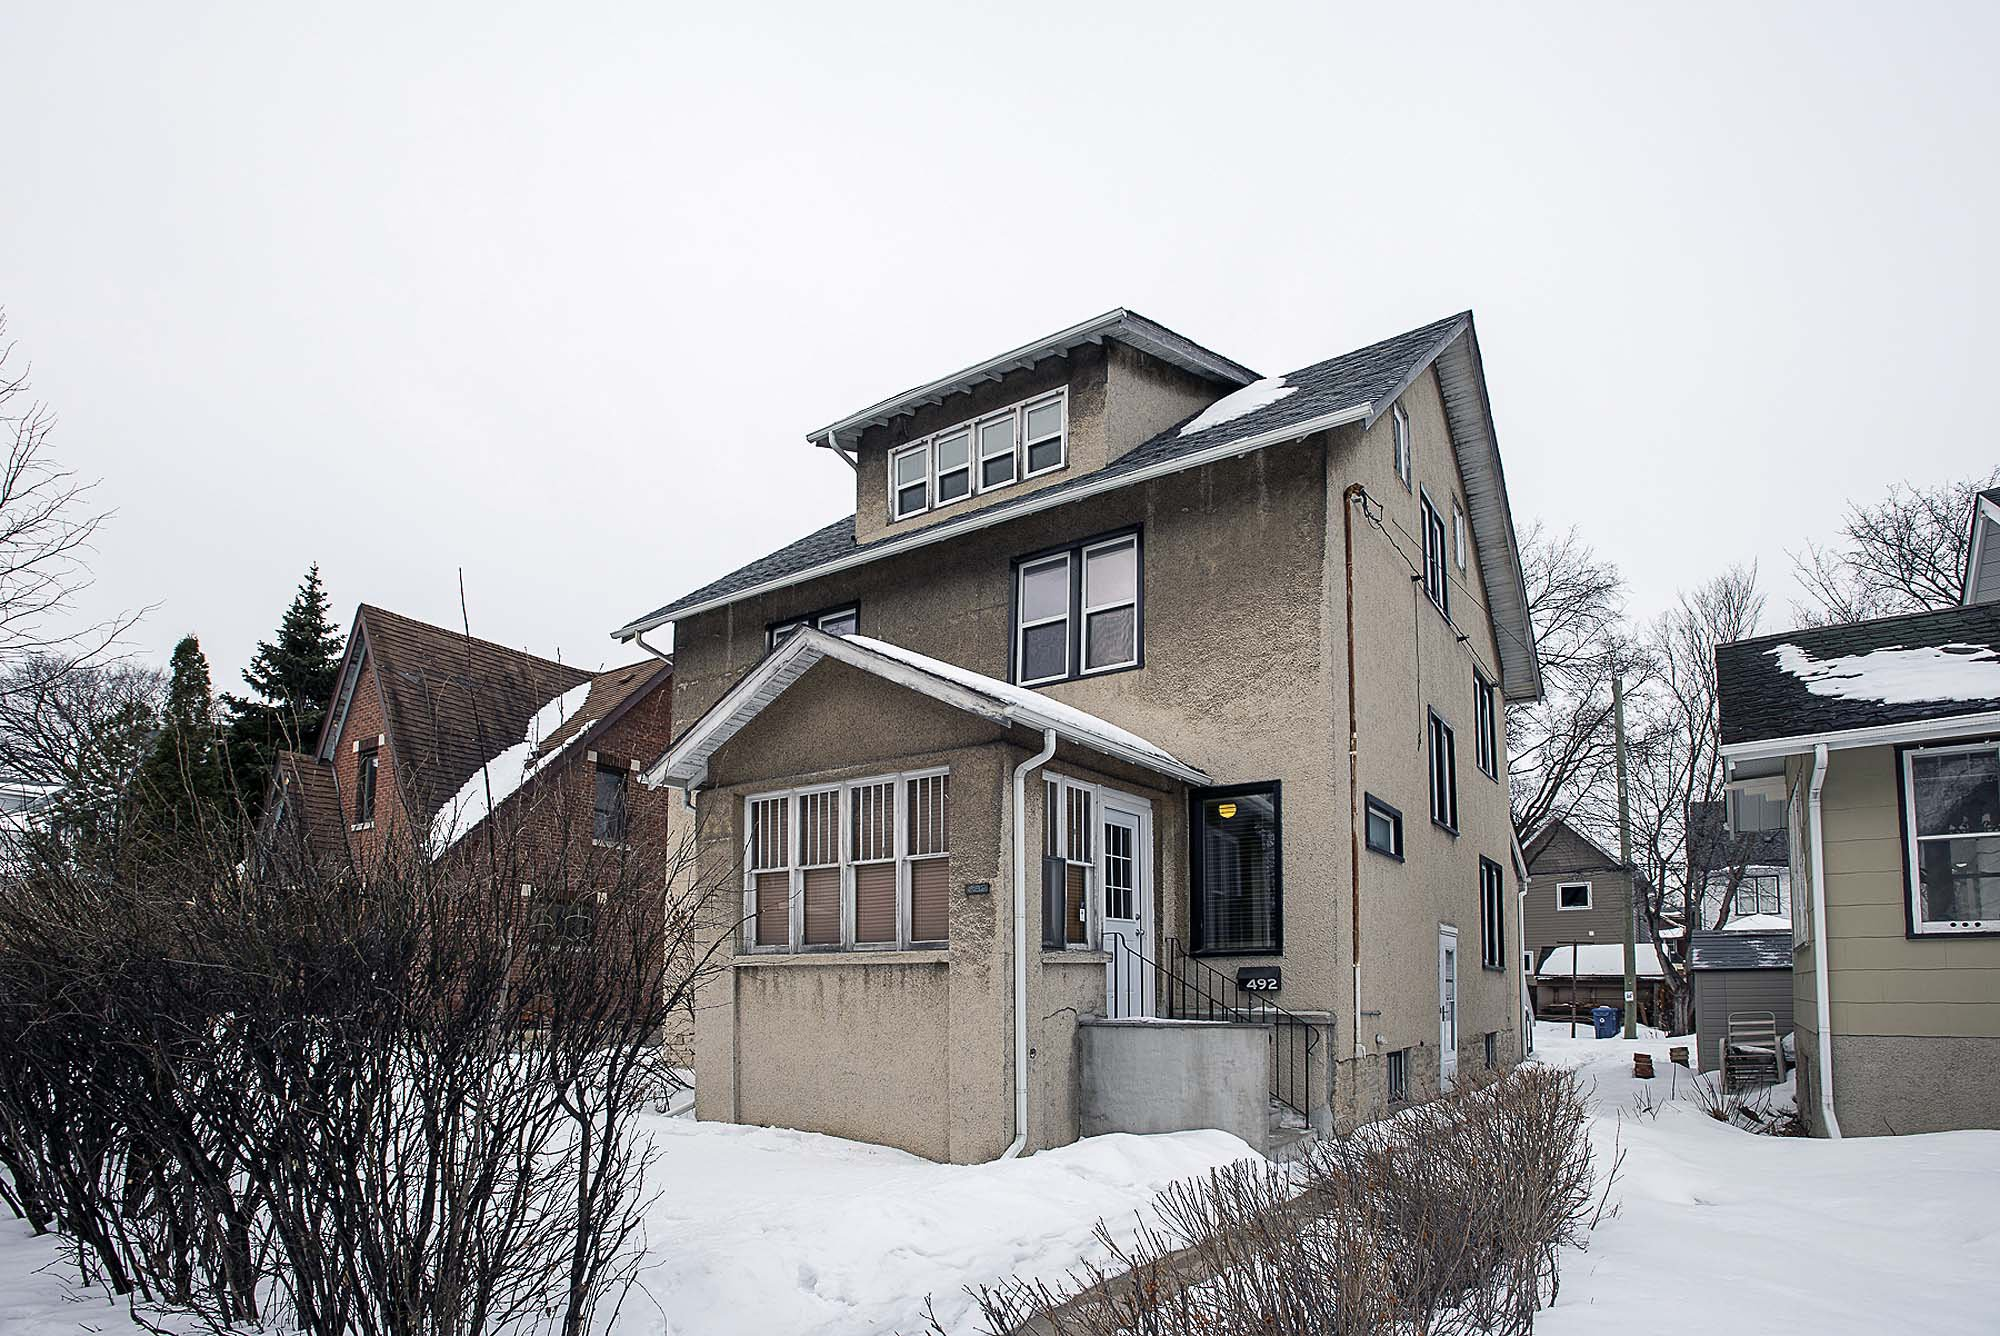 Main Photo: 492 Dominion Street in Winnipeg: Wolseley Residential for sale (5B)  : MLS®# 202005747